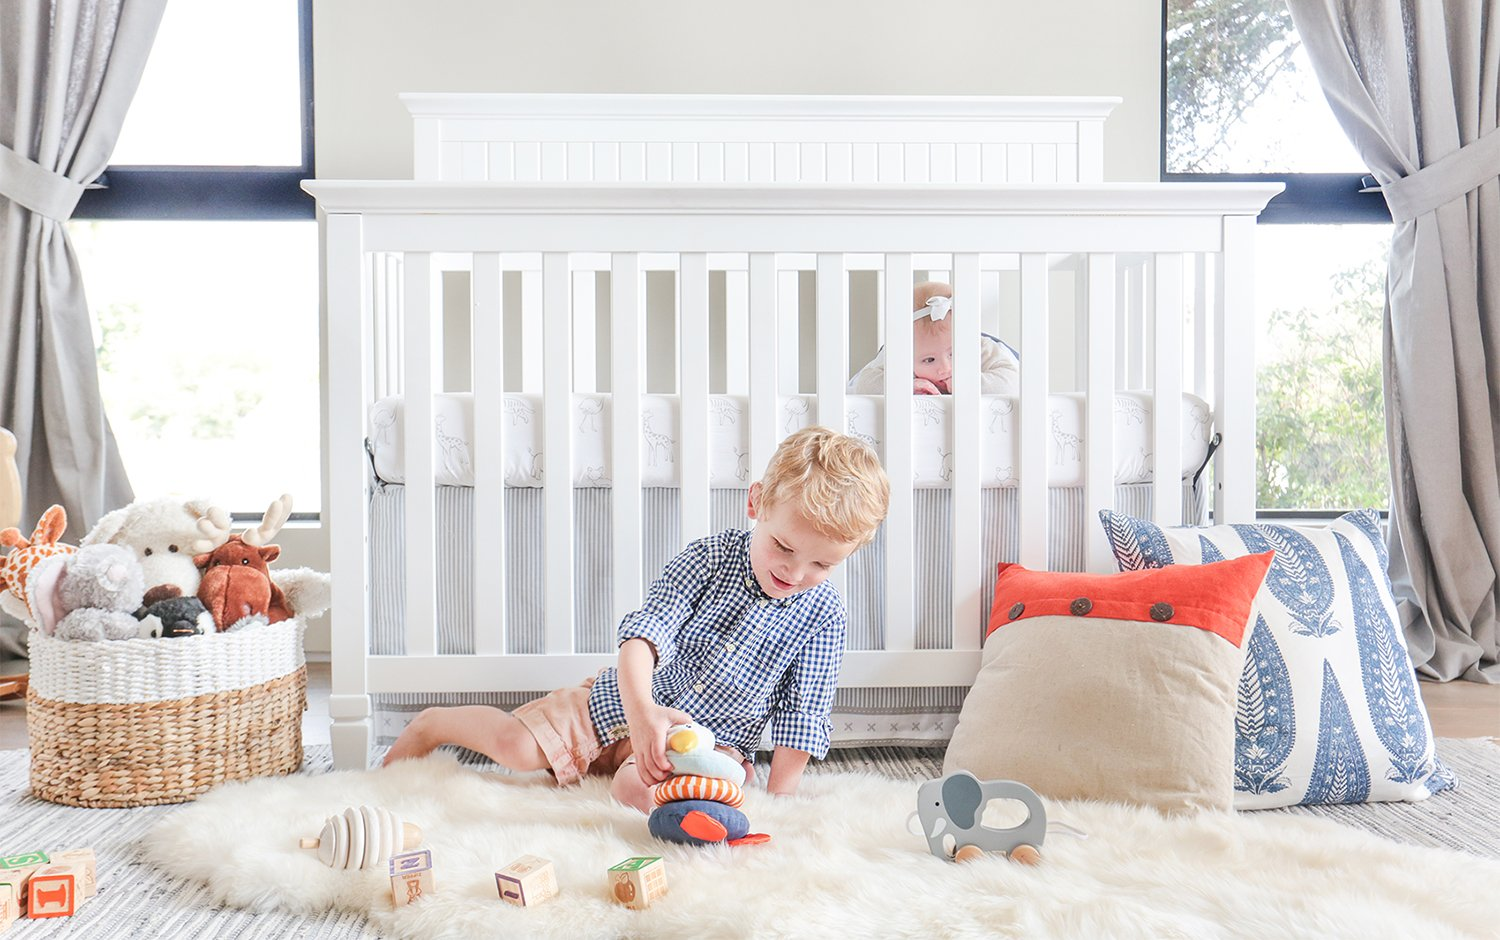 Best Cribs Reviews and buying guide by www.snoremagazine.com